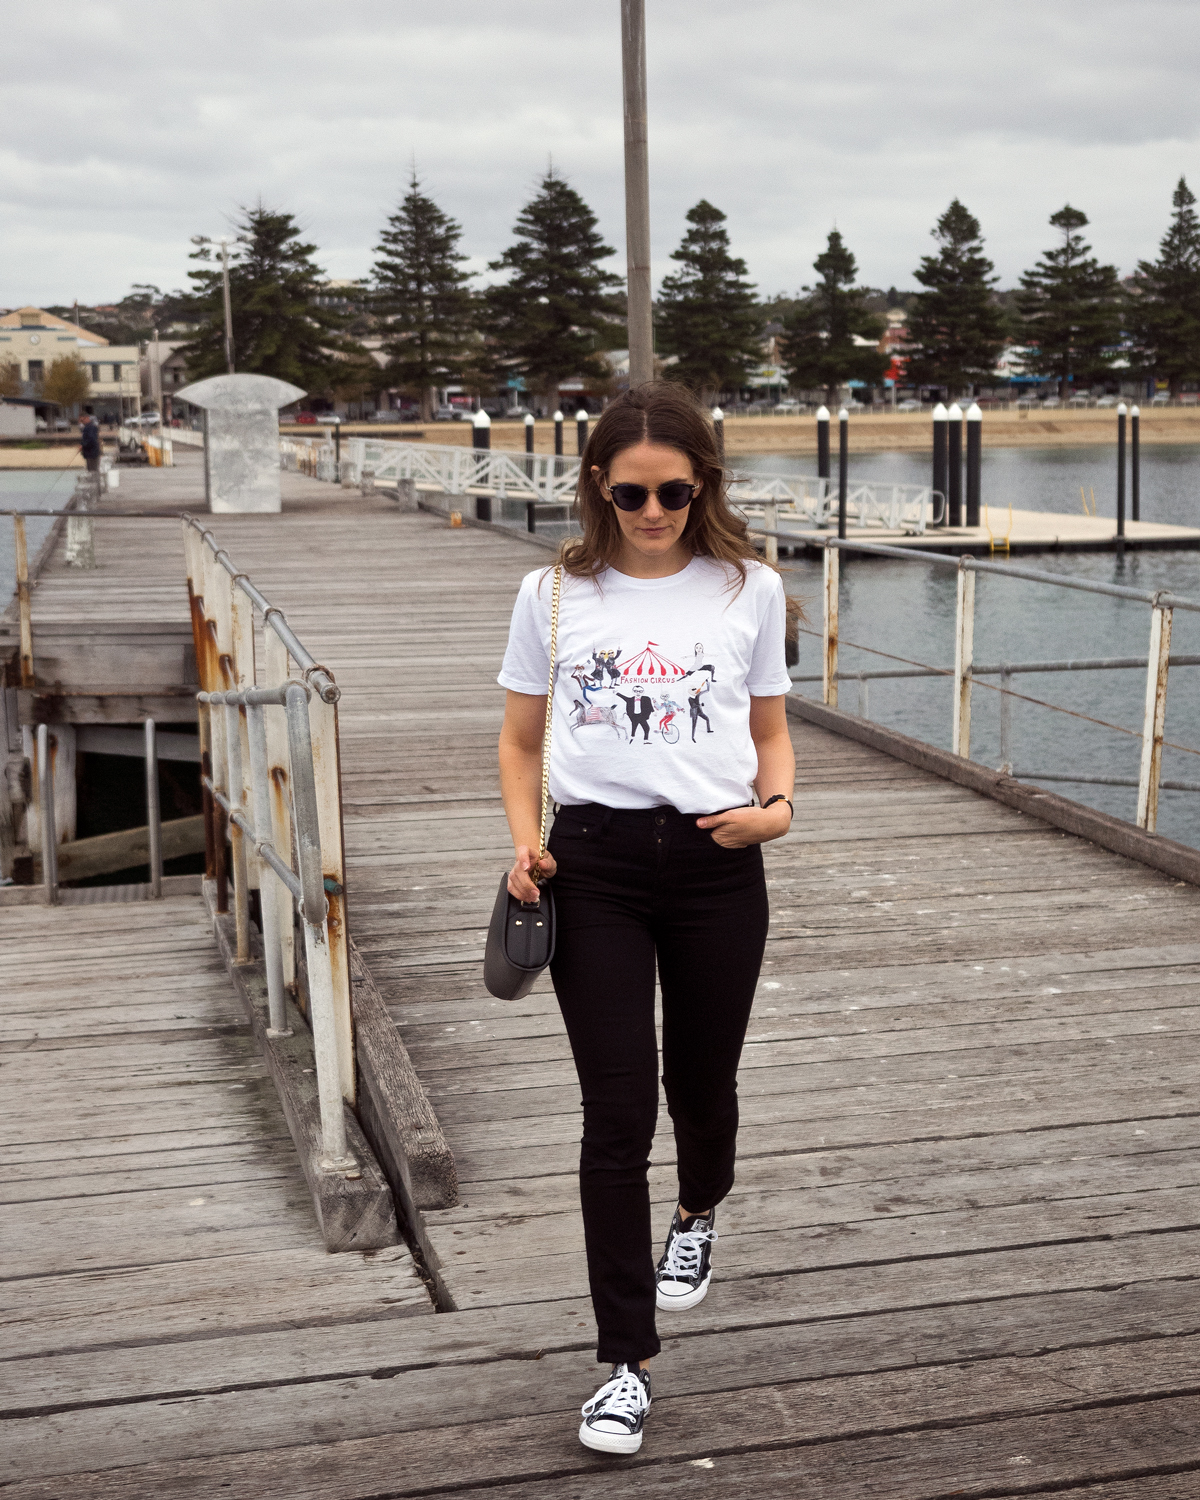 Oliver People's glasses, Unfortunate Portrait Fashion Circus t-shirt, Mavi black jeans, Black Converse sneakers, APC luna half moon bag winter outfit in Port Lincoln. Worn by Jenelle Witty fashion and travel blogger from Inspiring Wit